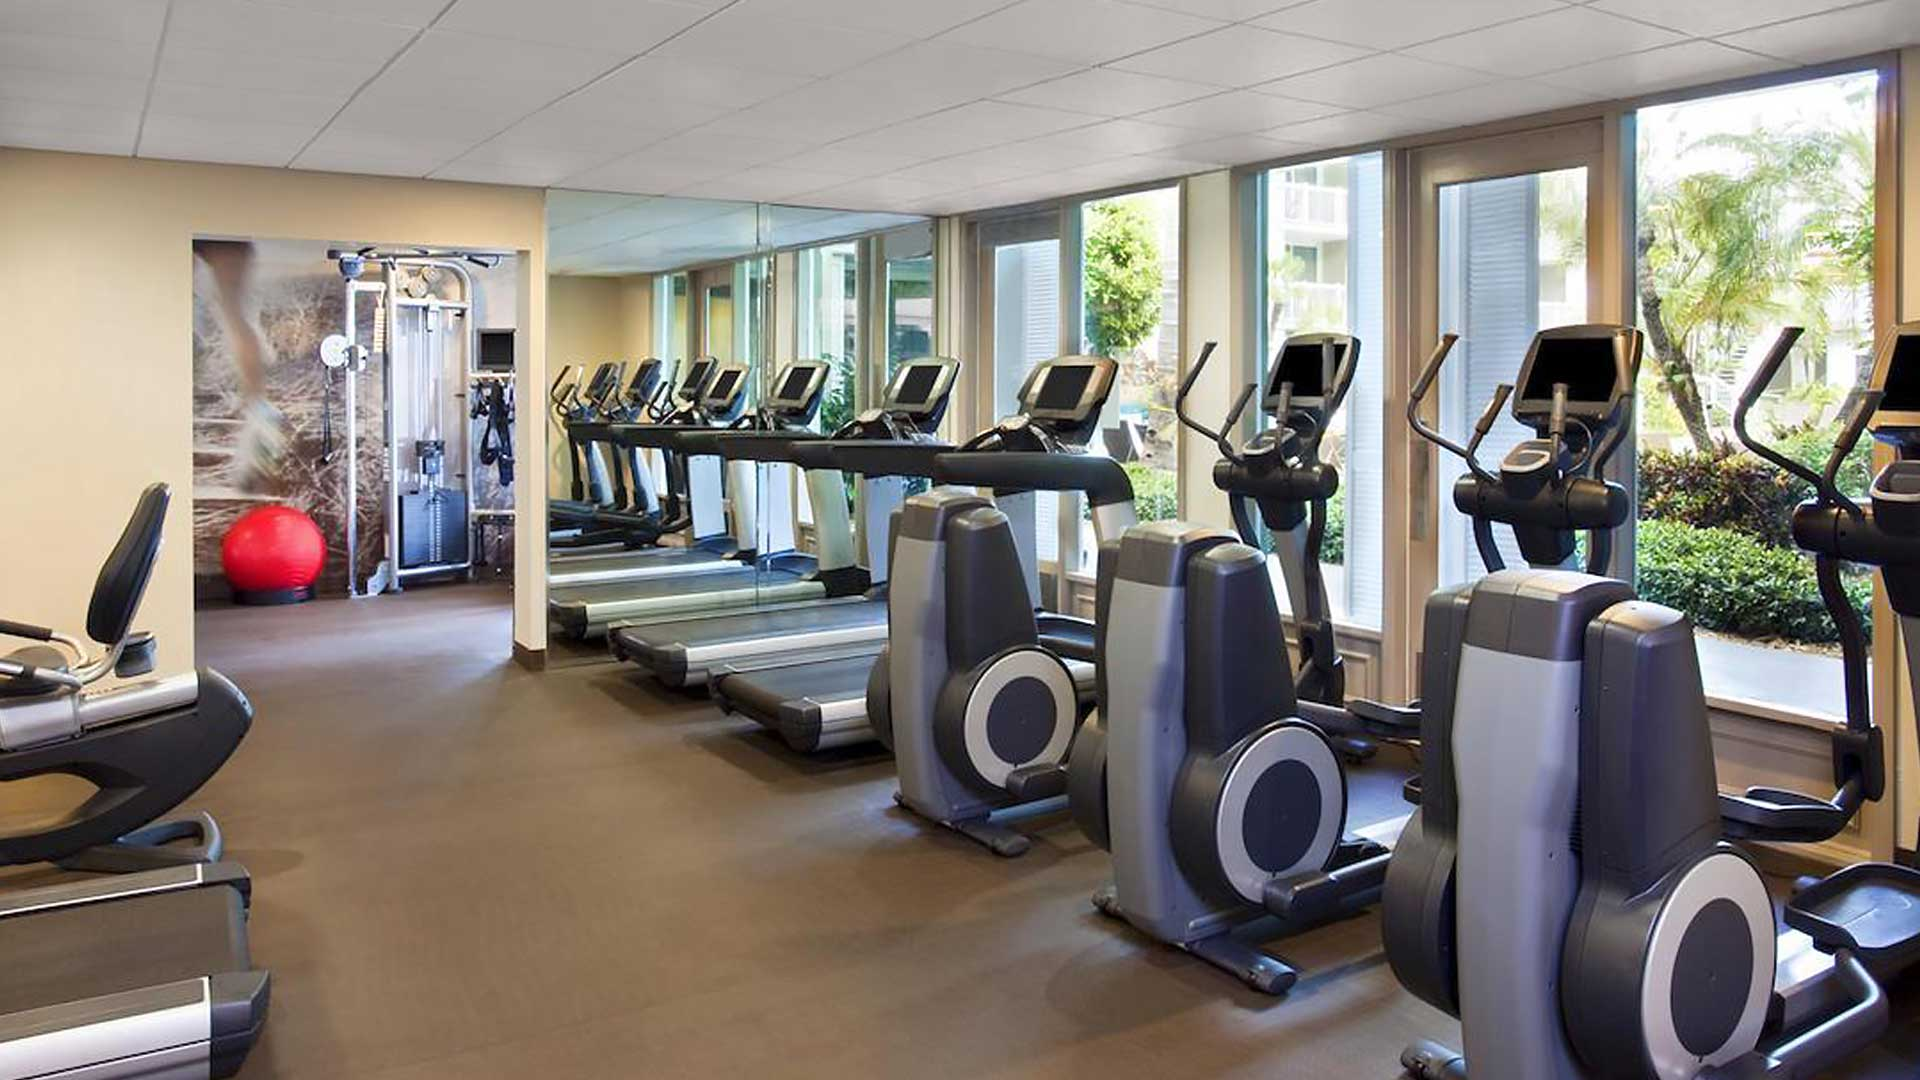 Margaritaville resort & marina fitness studio in key west